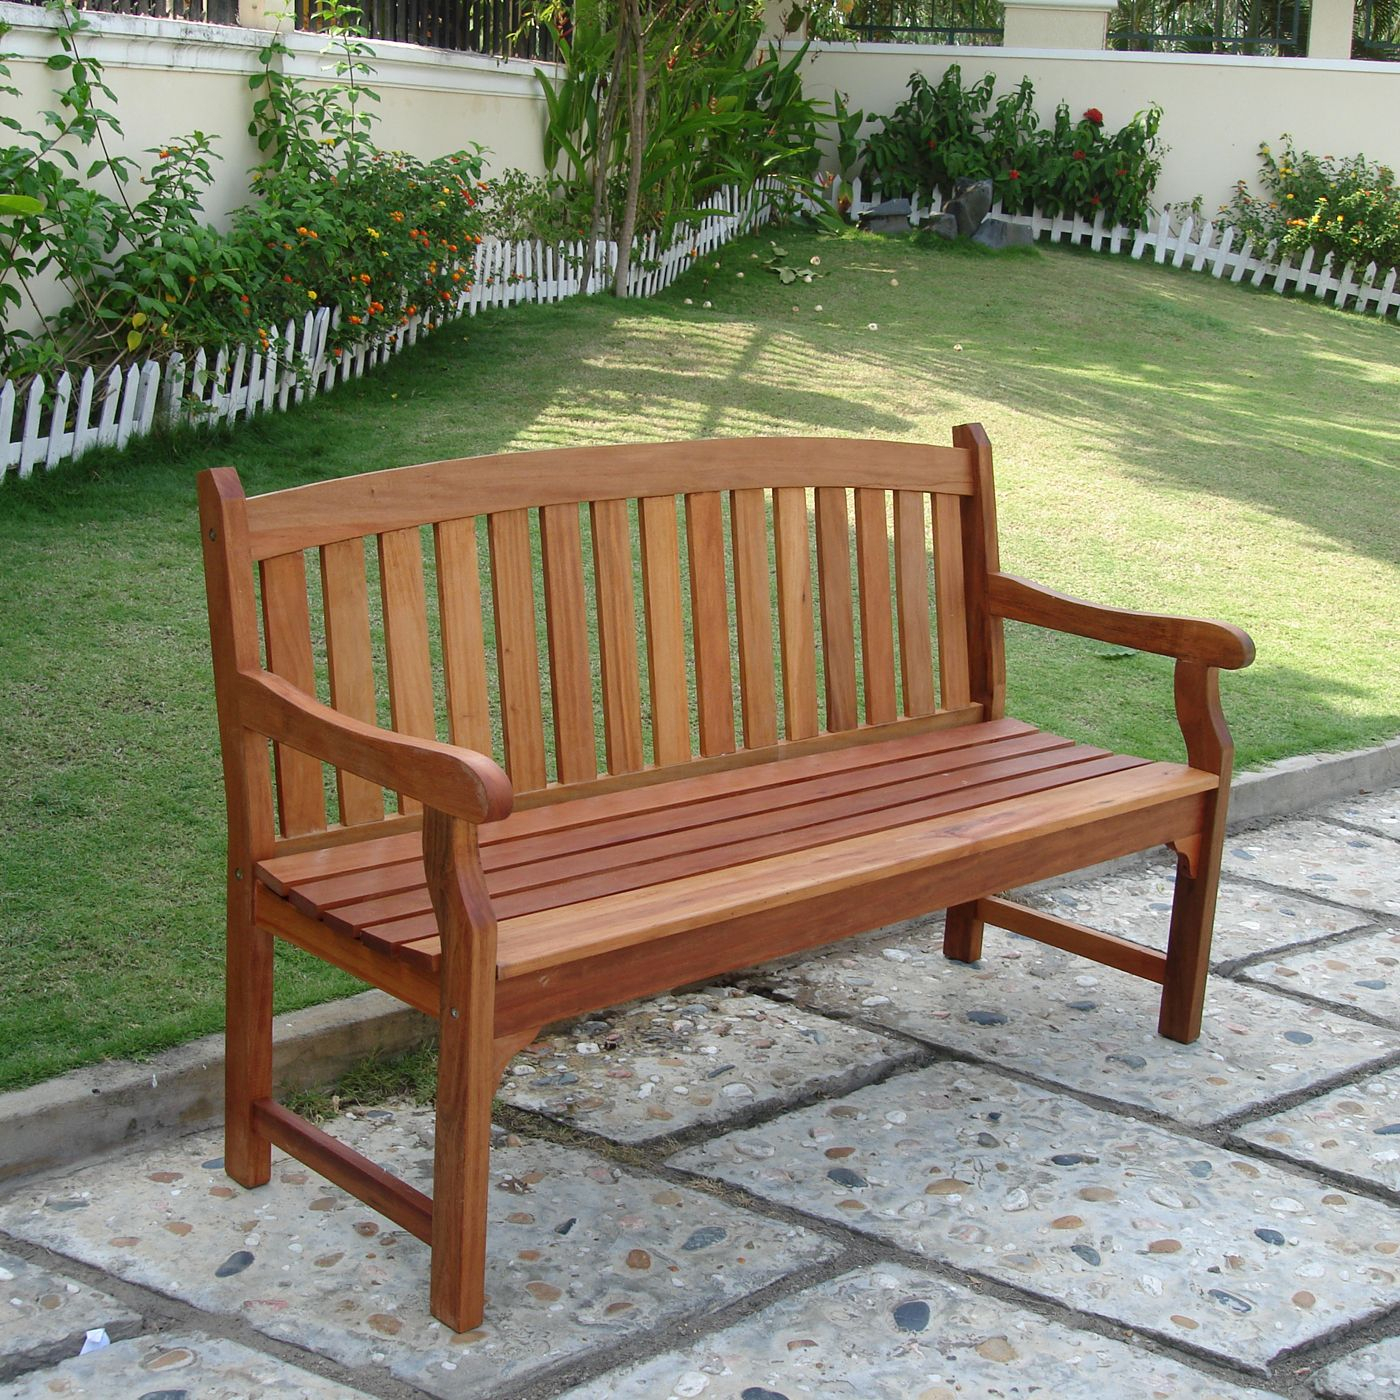 Vifah V275 Marley Two Seater Bench – Outdoor Living Showroom With Wallie Teak Garden Benches (View 10 of 25)